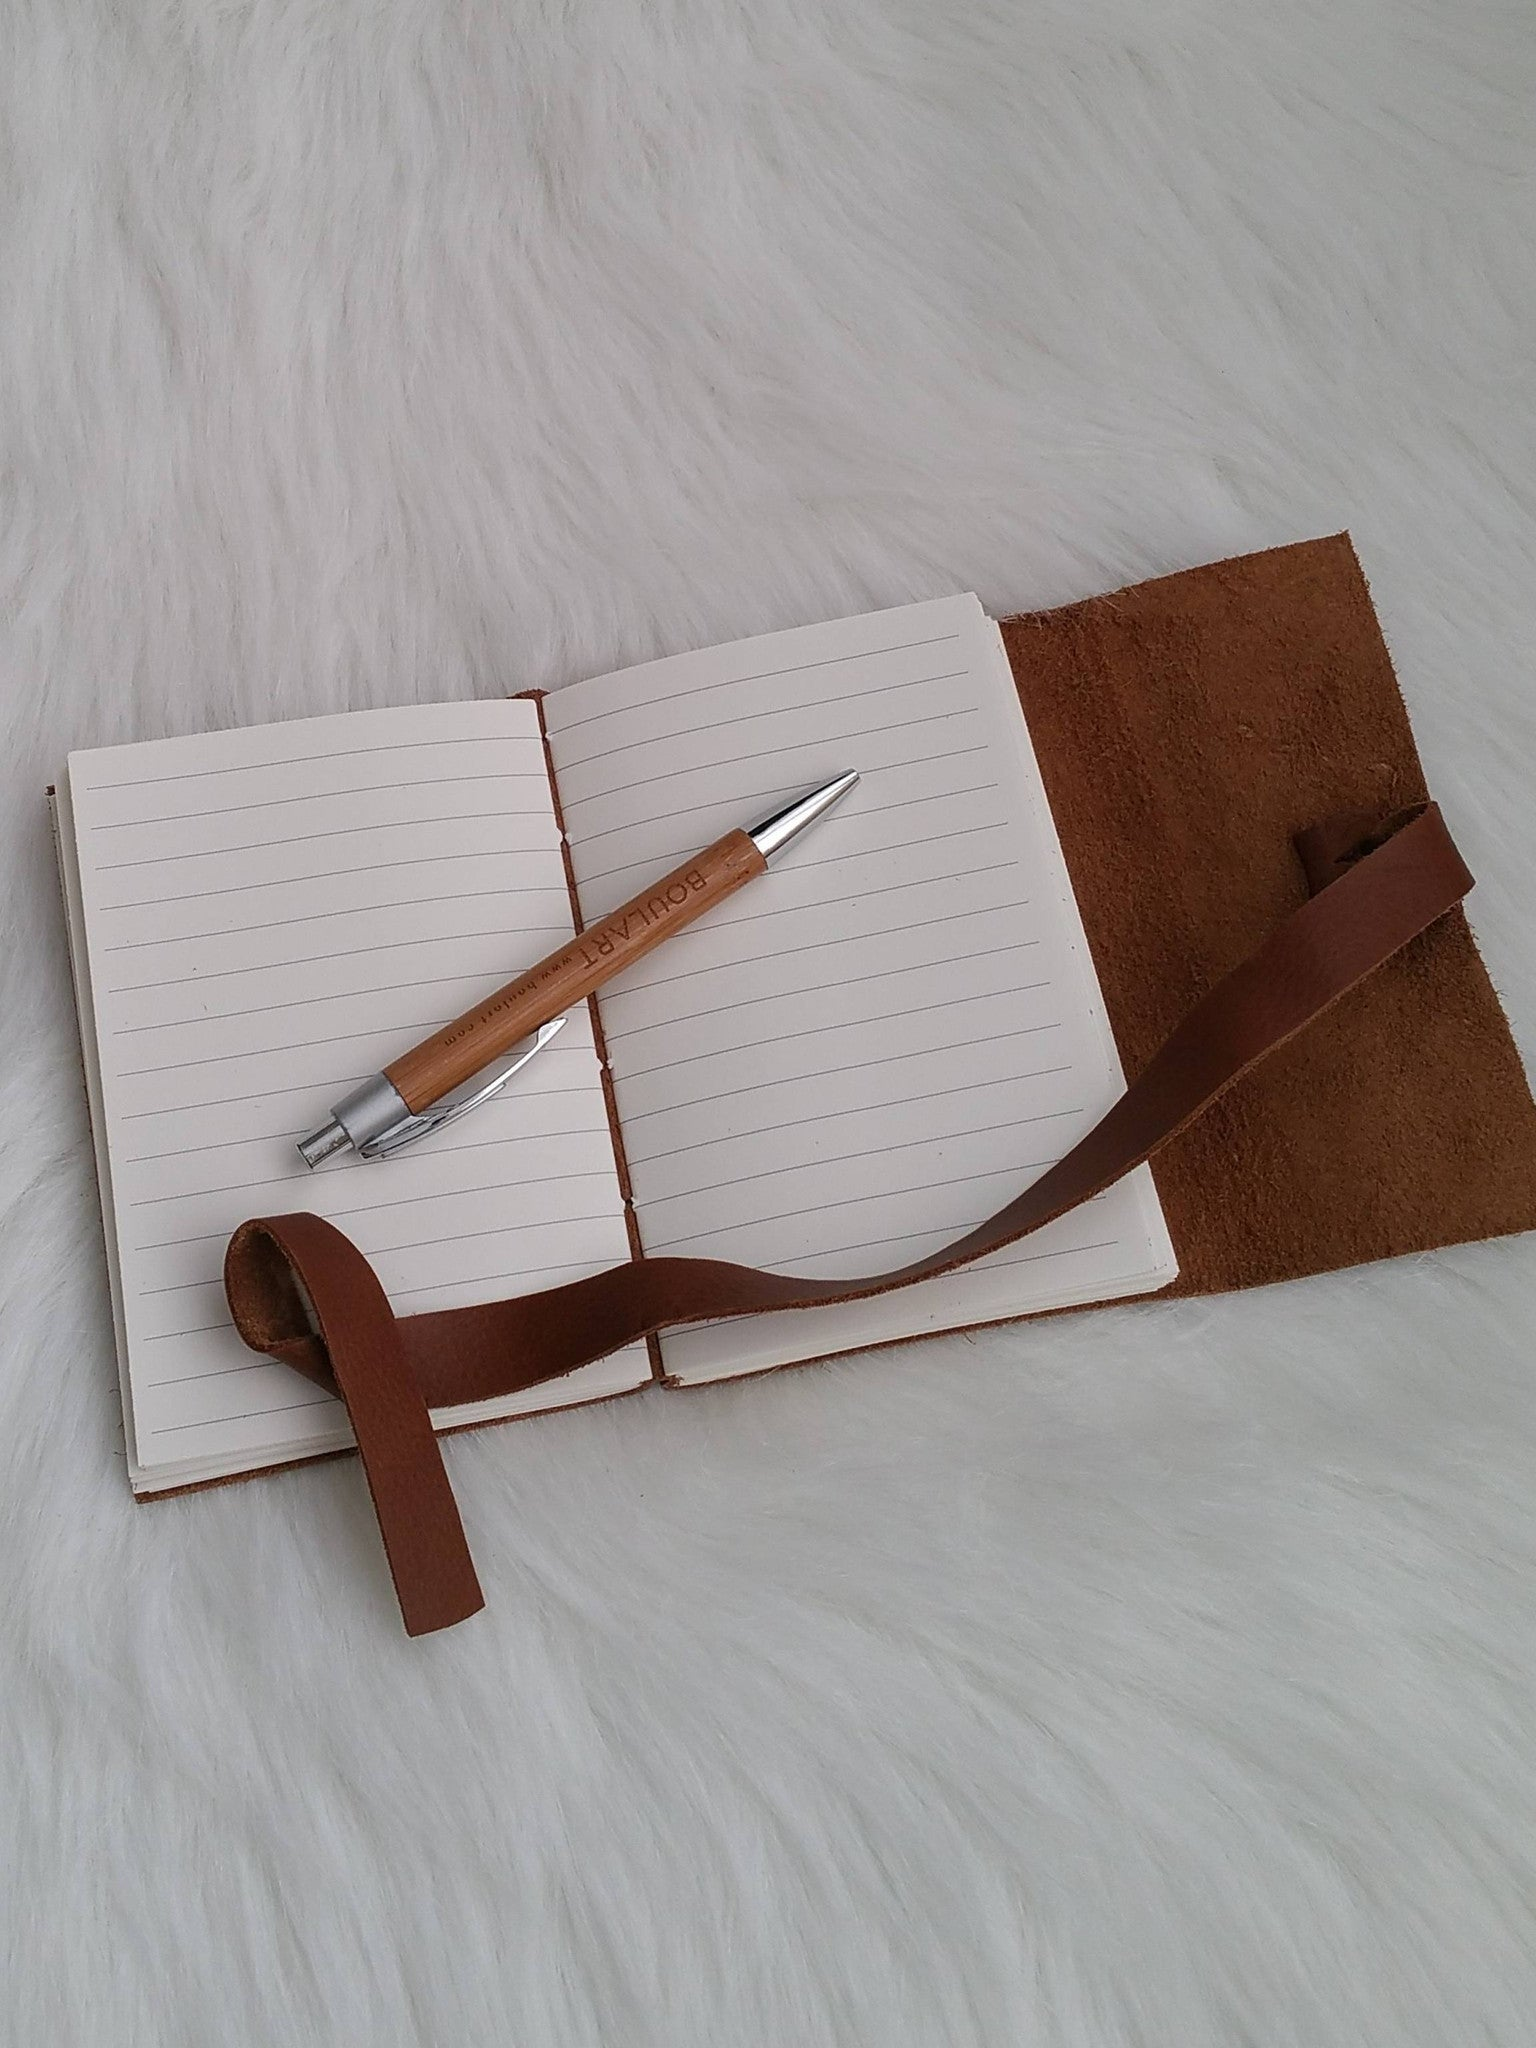 Leather Journals, Leather Books, Leather Notebooks - Bedao Boutique